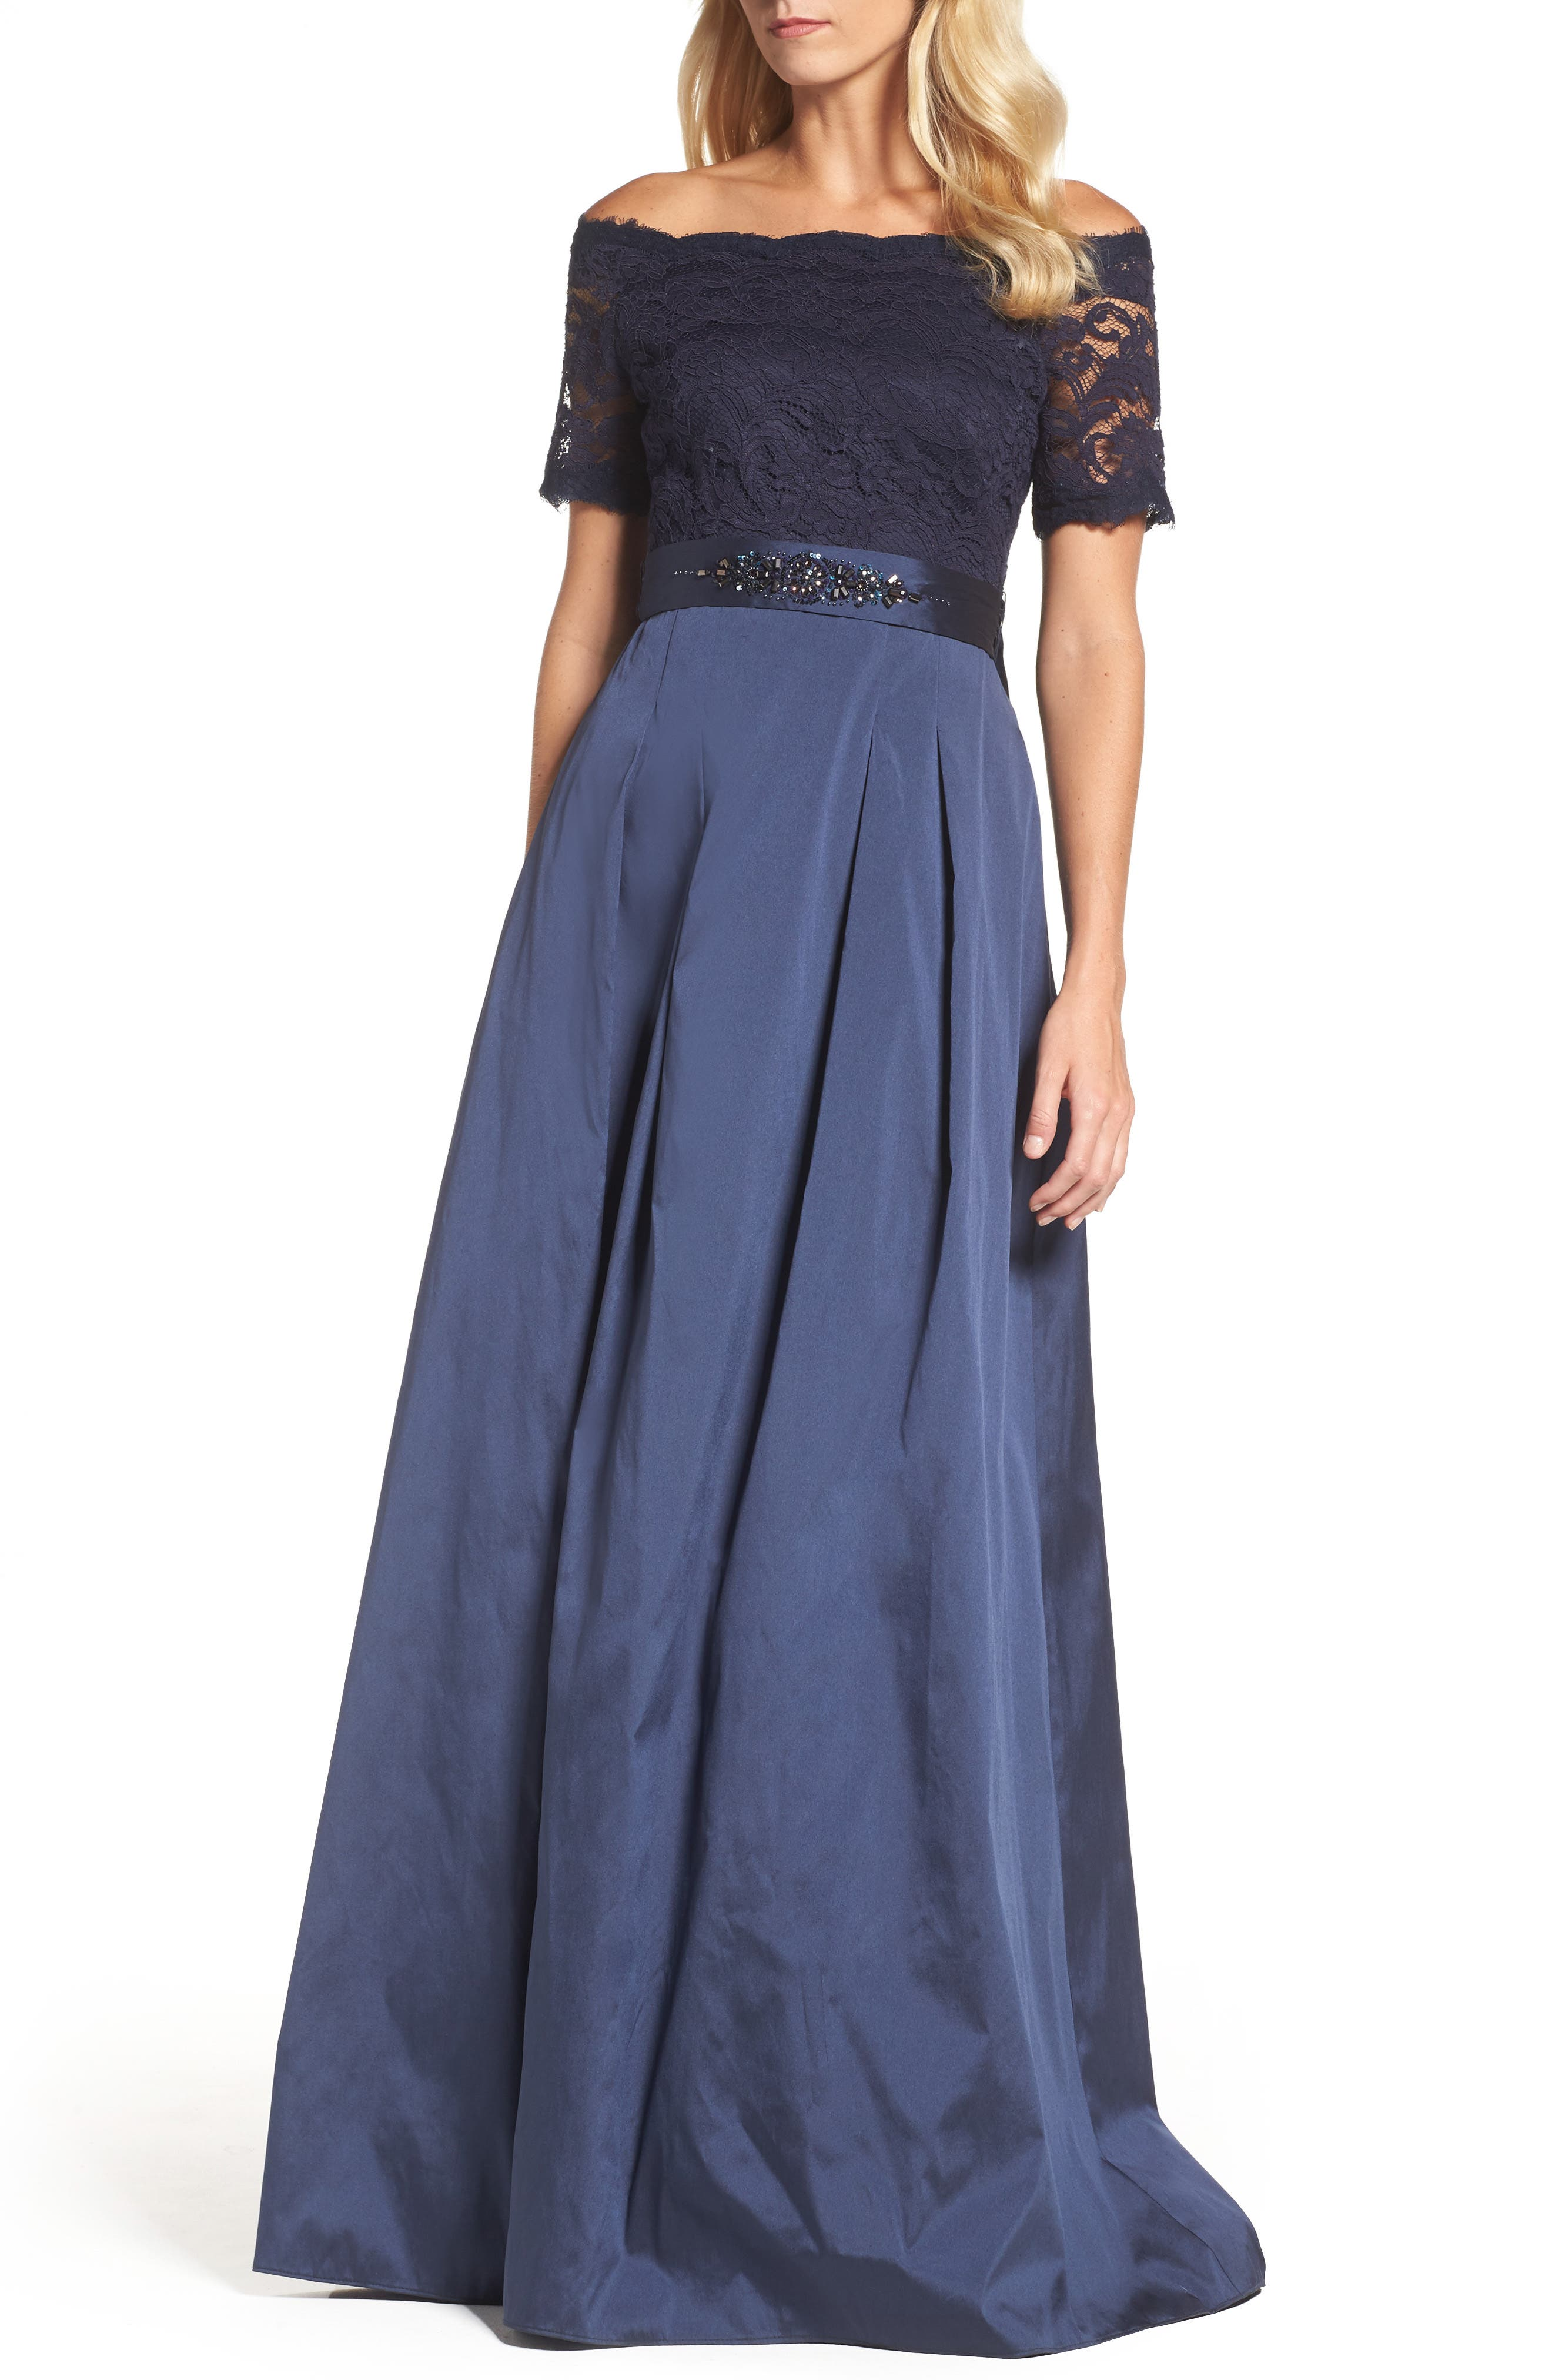 Alternate Image 1 Selected - Adrianna Papell Off the Shoulder Gown